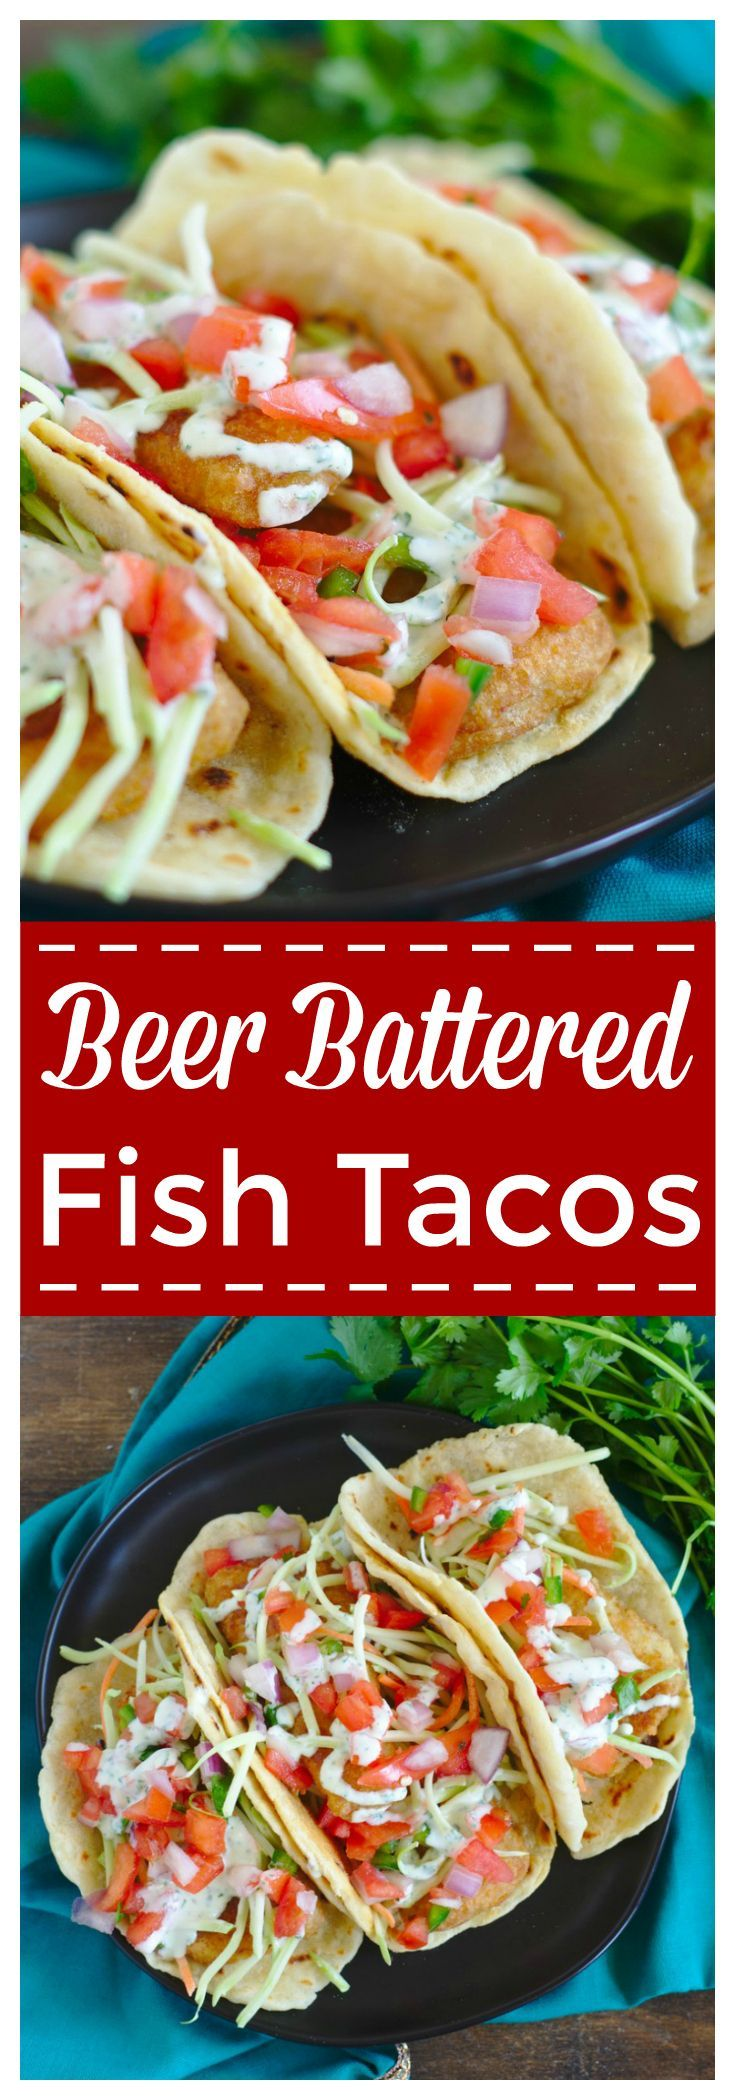 Beer Battered Fish Tacos – This quick and easy fish tacos recipe is so delicious! Beer battered fish, pico de gallo, slaw, and a homemade cilantro lime sauce in a flour tortilla! #ad #GortonsMealTime #TrustGortons #seafood #fish #tacos